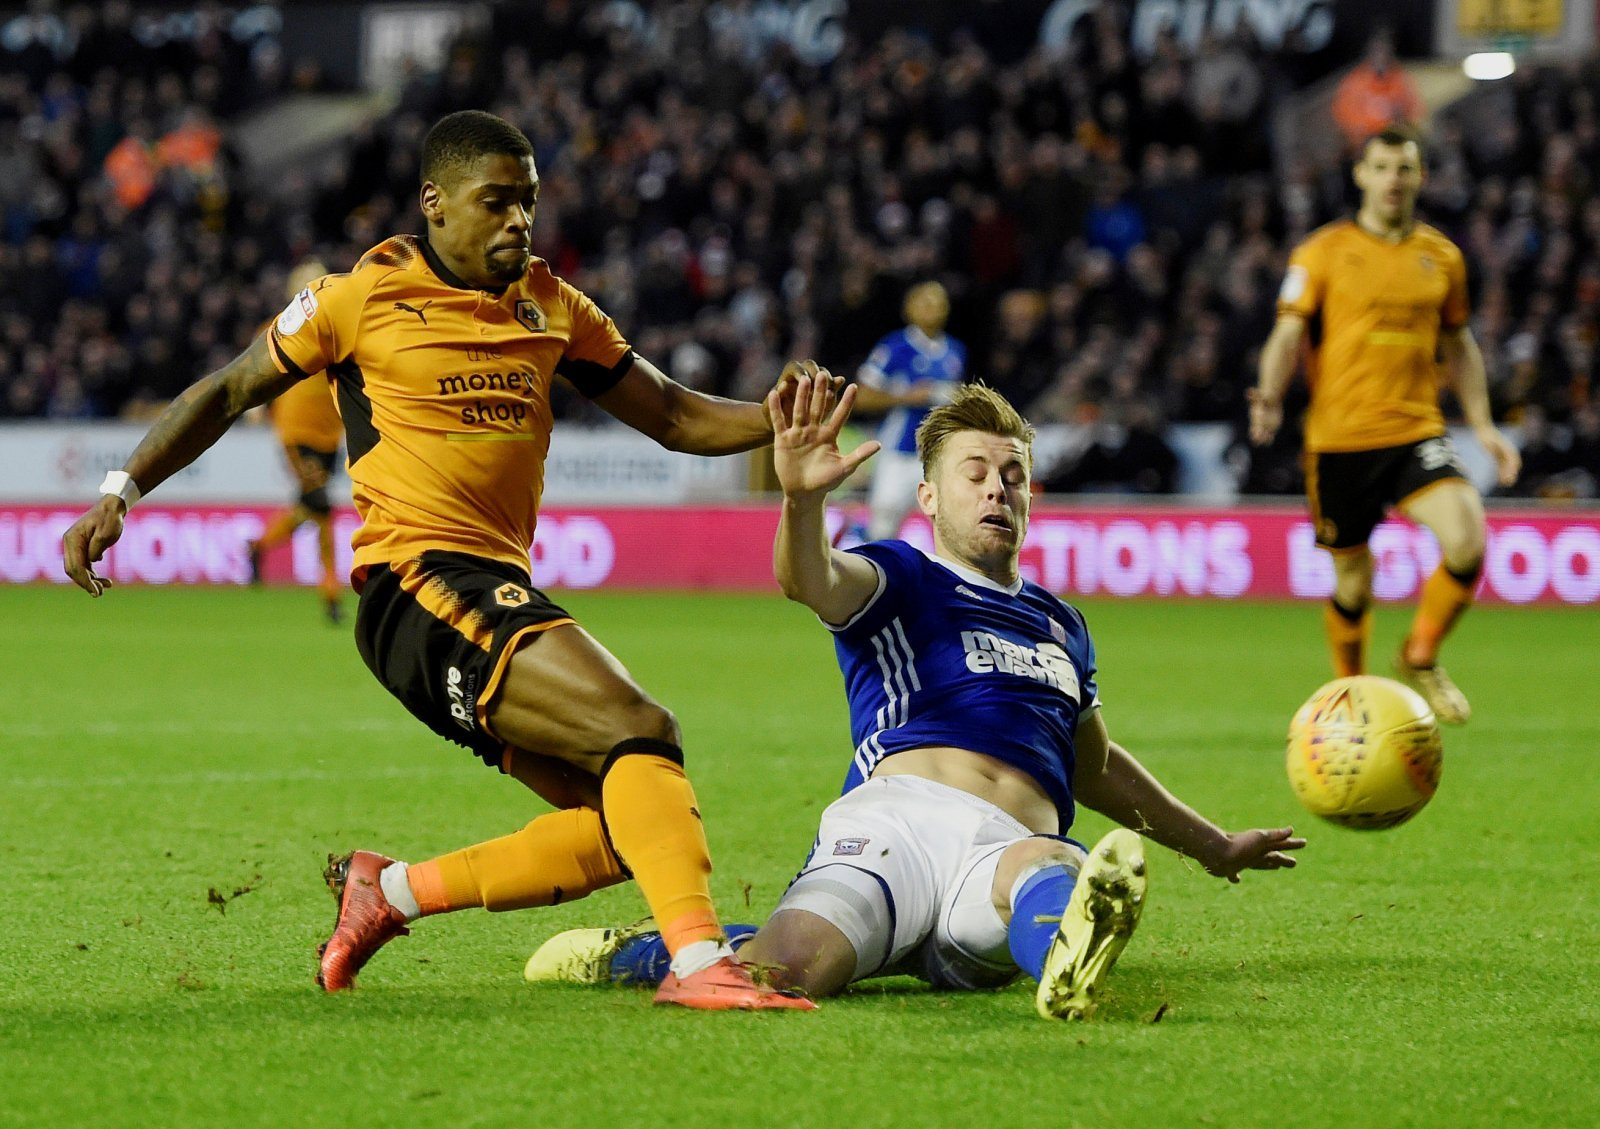 Domino effect: Traore to Wolves could see West Brom pounce for Cavaleiro